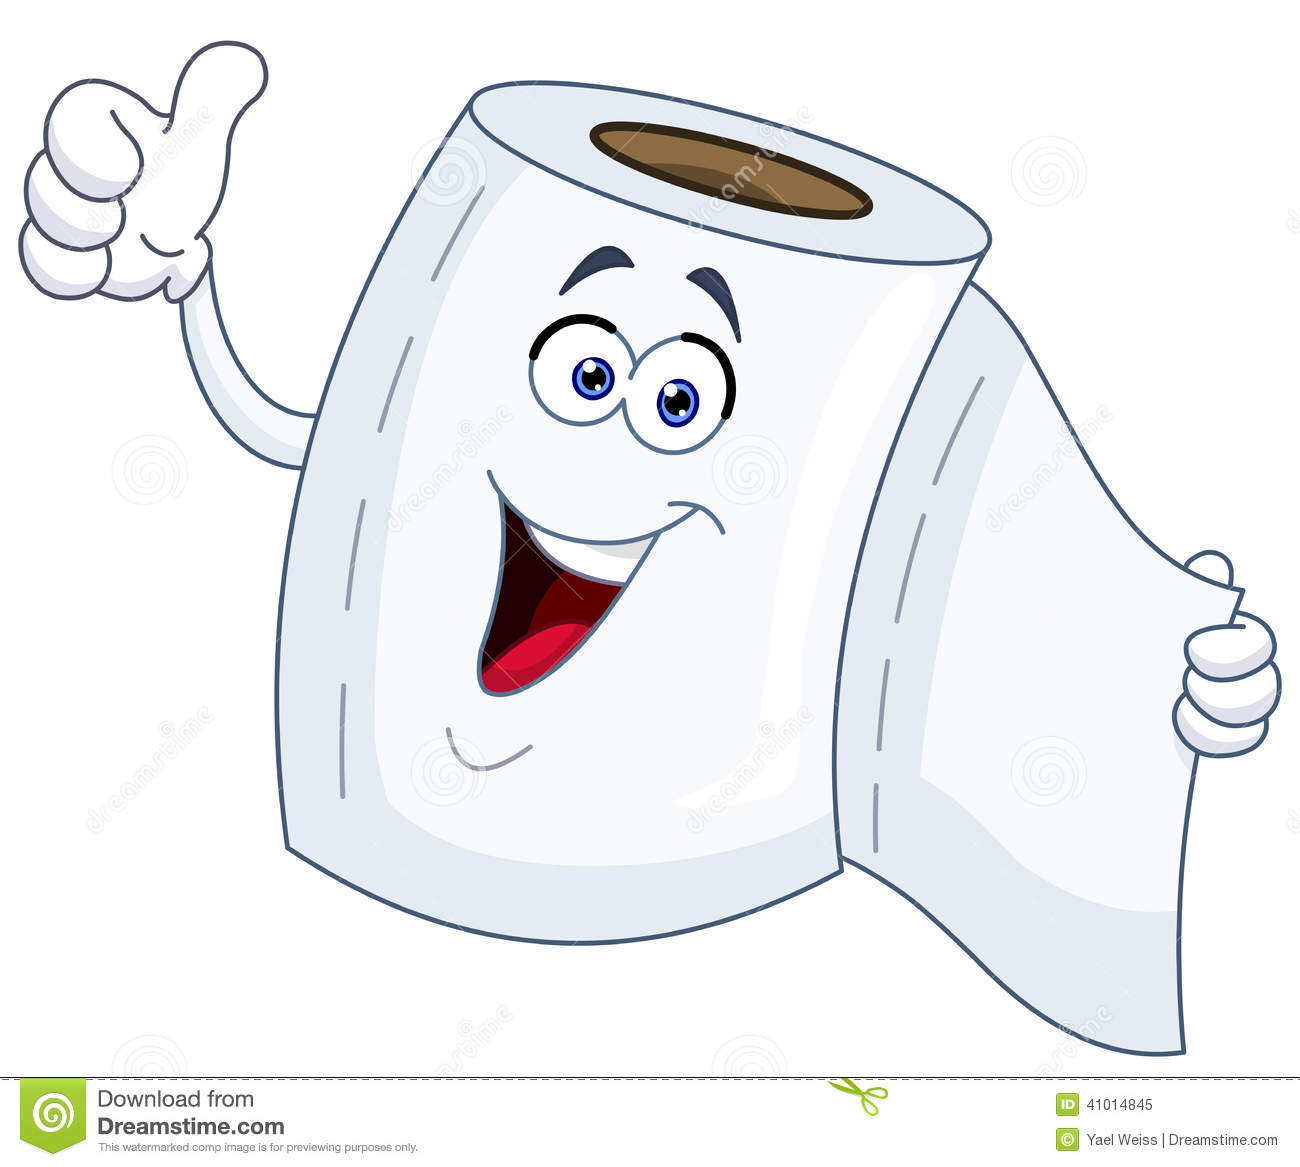 Toilet Paper Cartoon Stock Vector - Image: 41014845